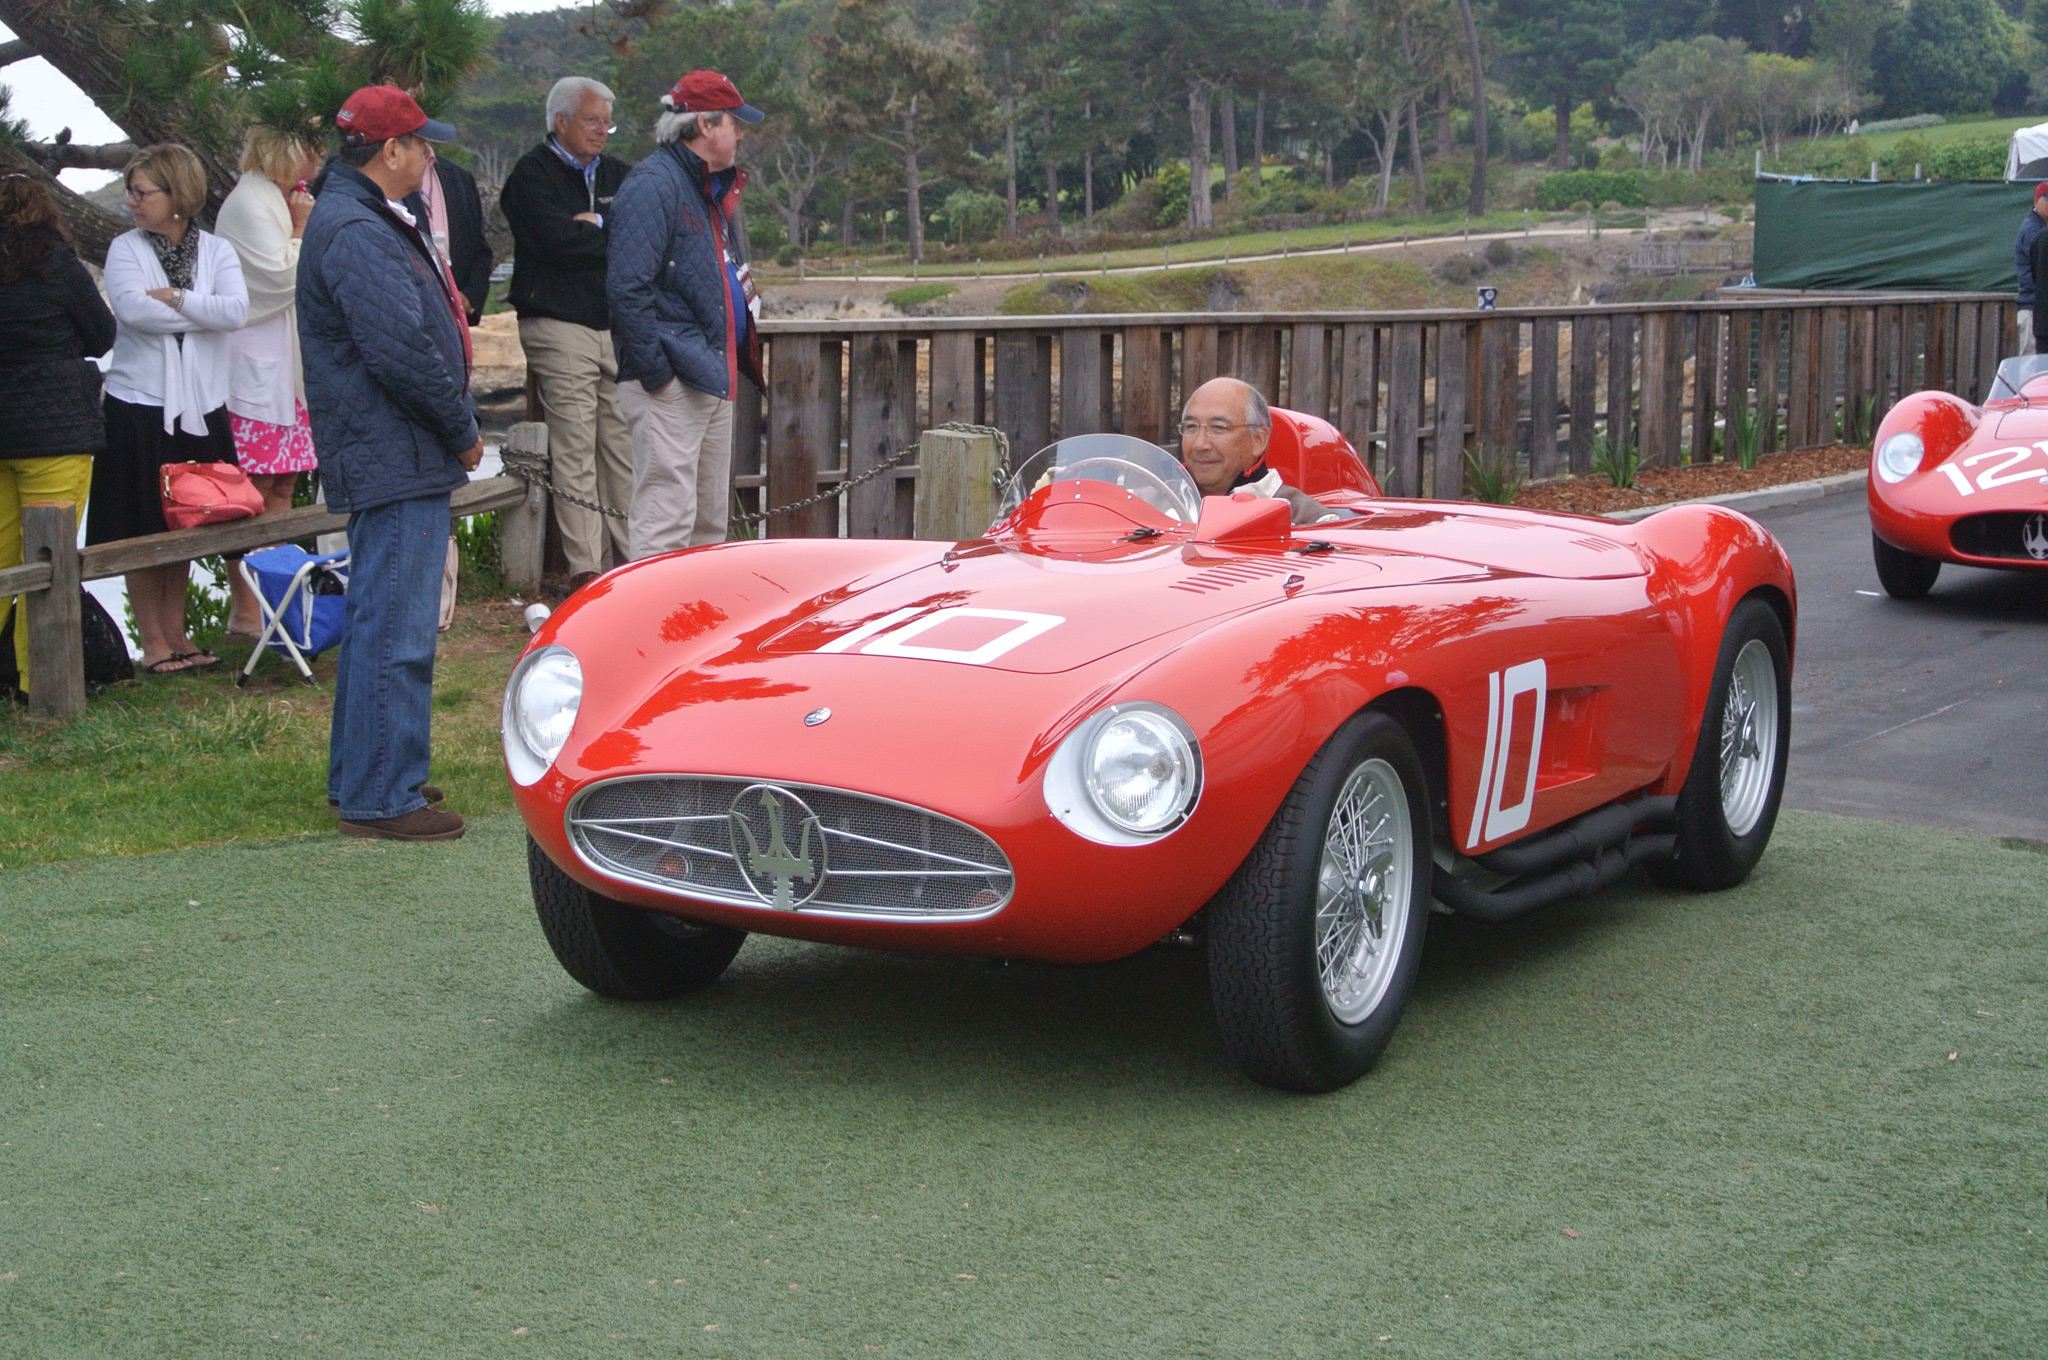 Highlights of the 2014 Pebble Beach Concours d'Elegance